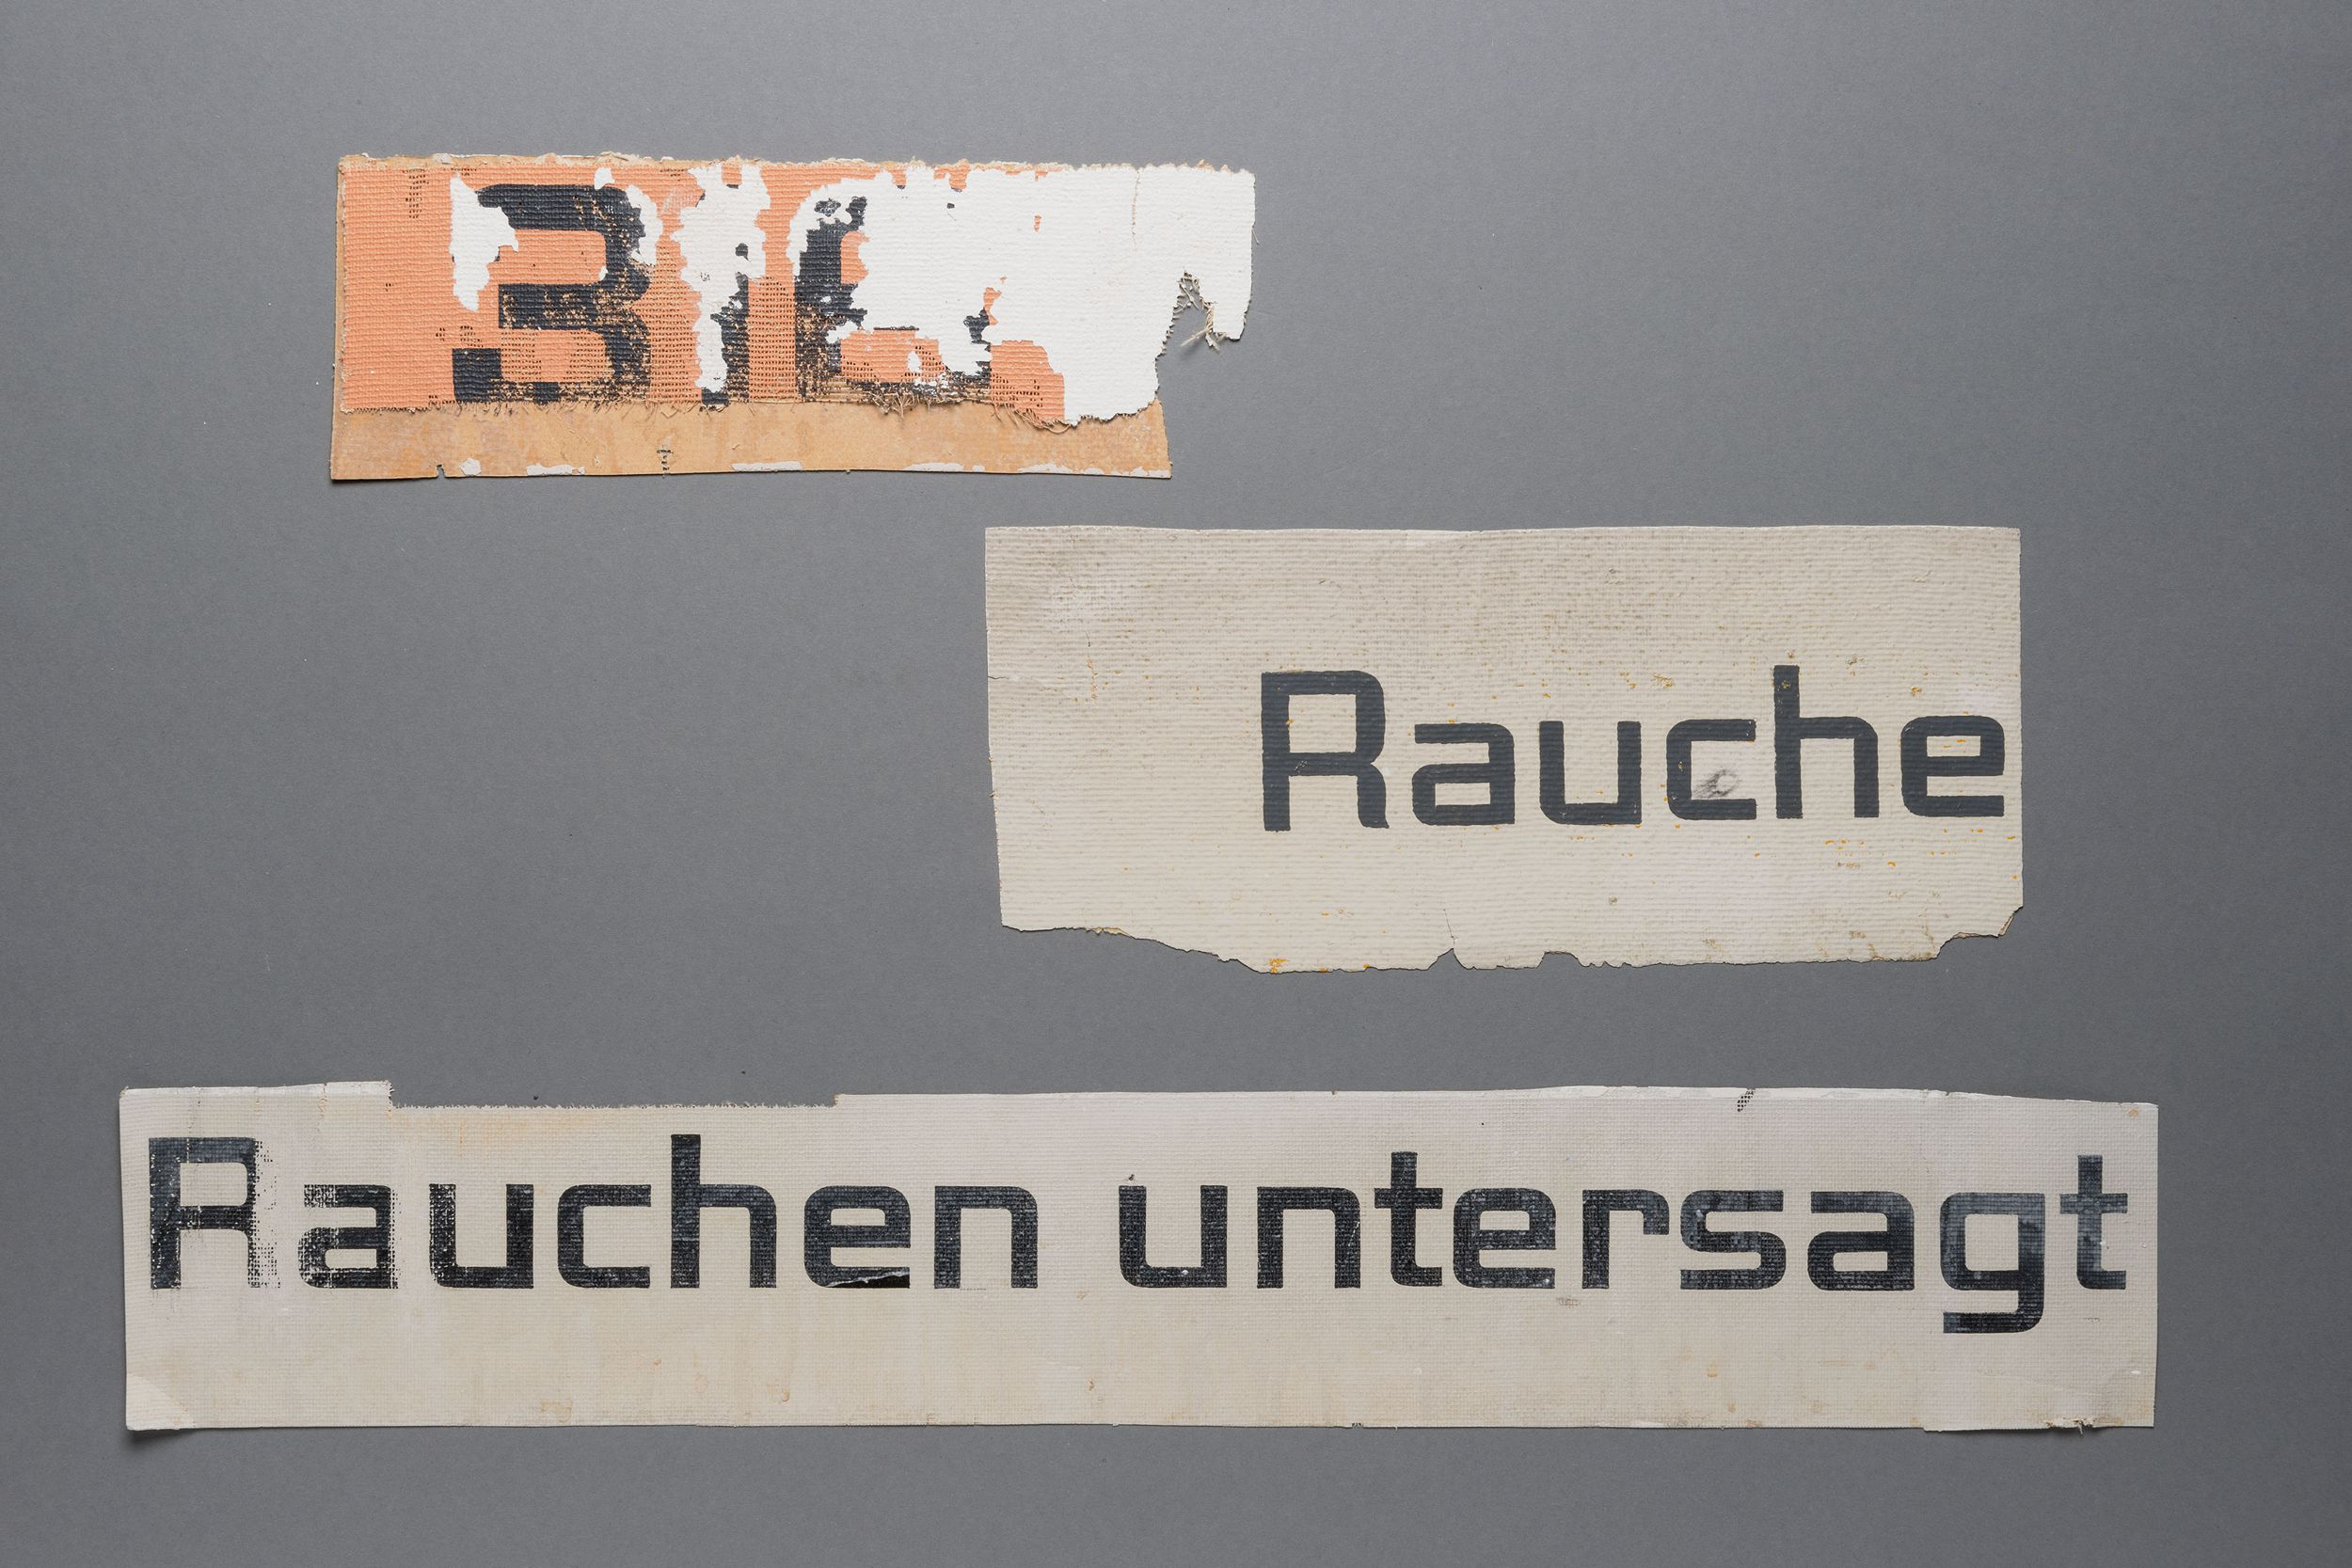 Samples of the original type face created by Ernst Keller